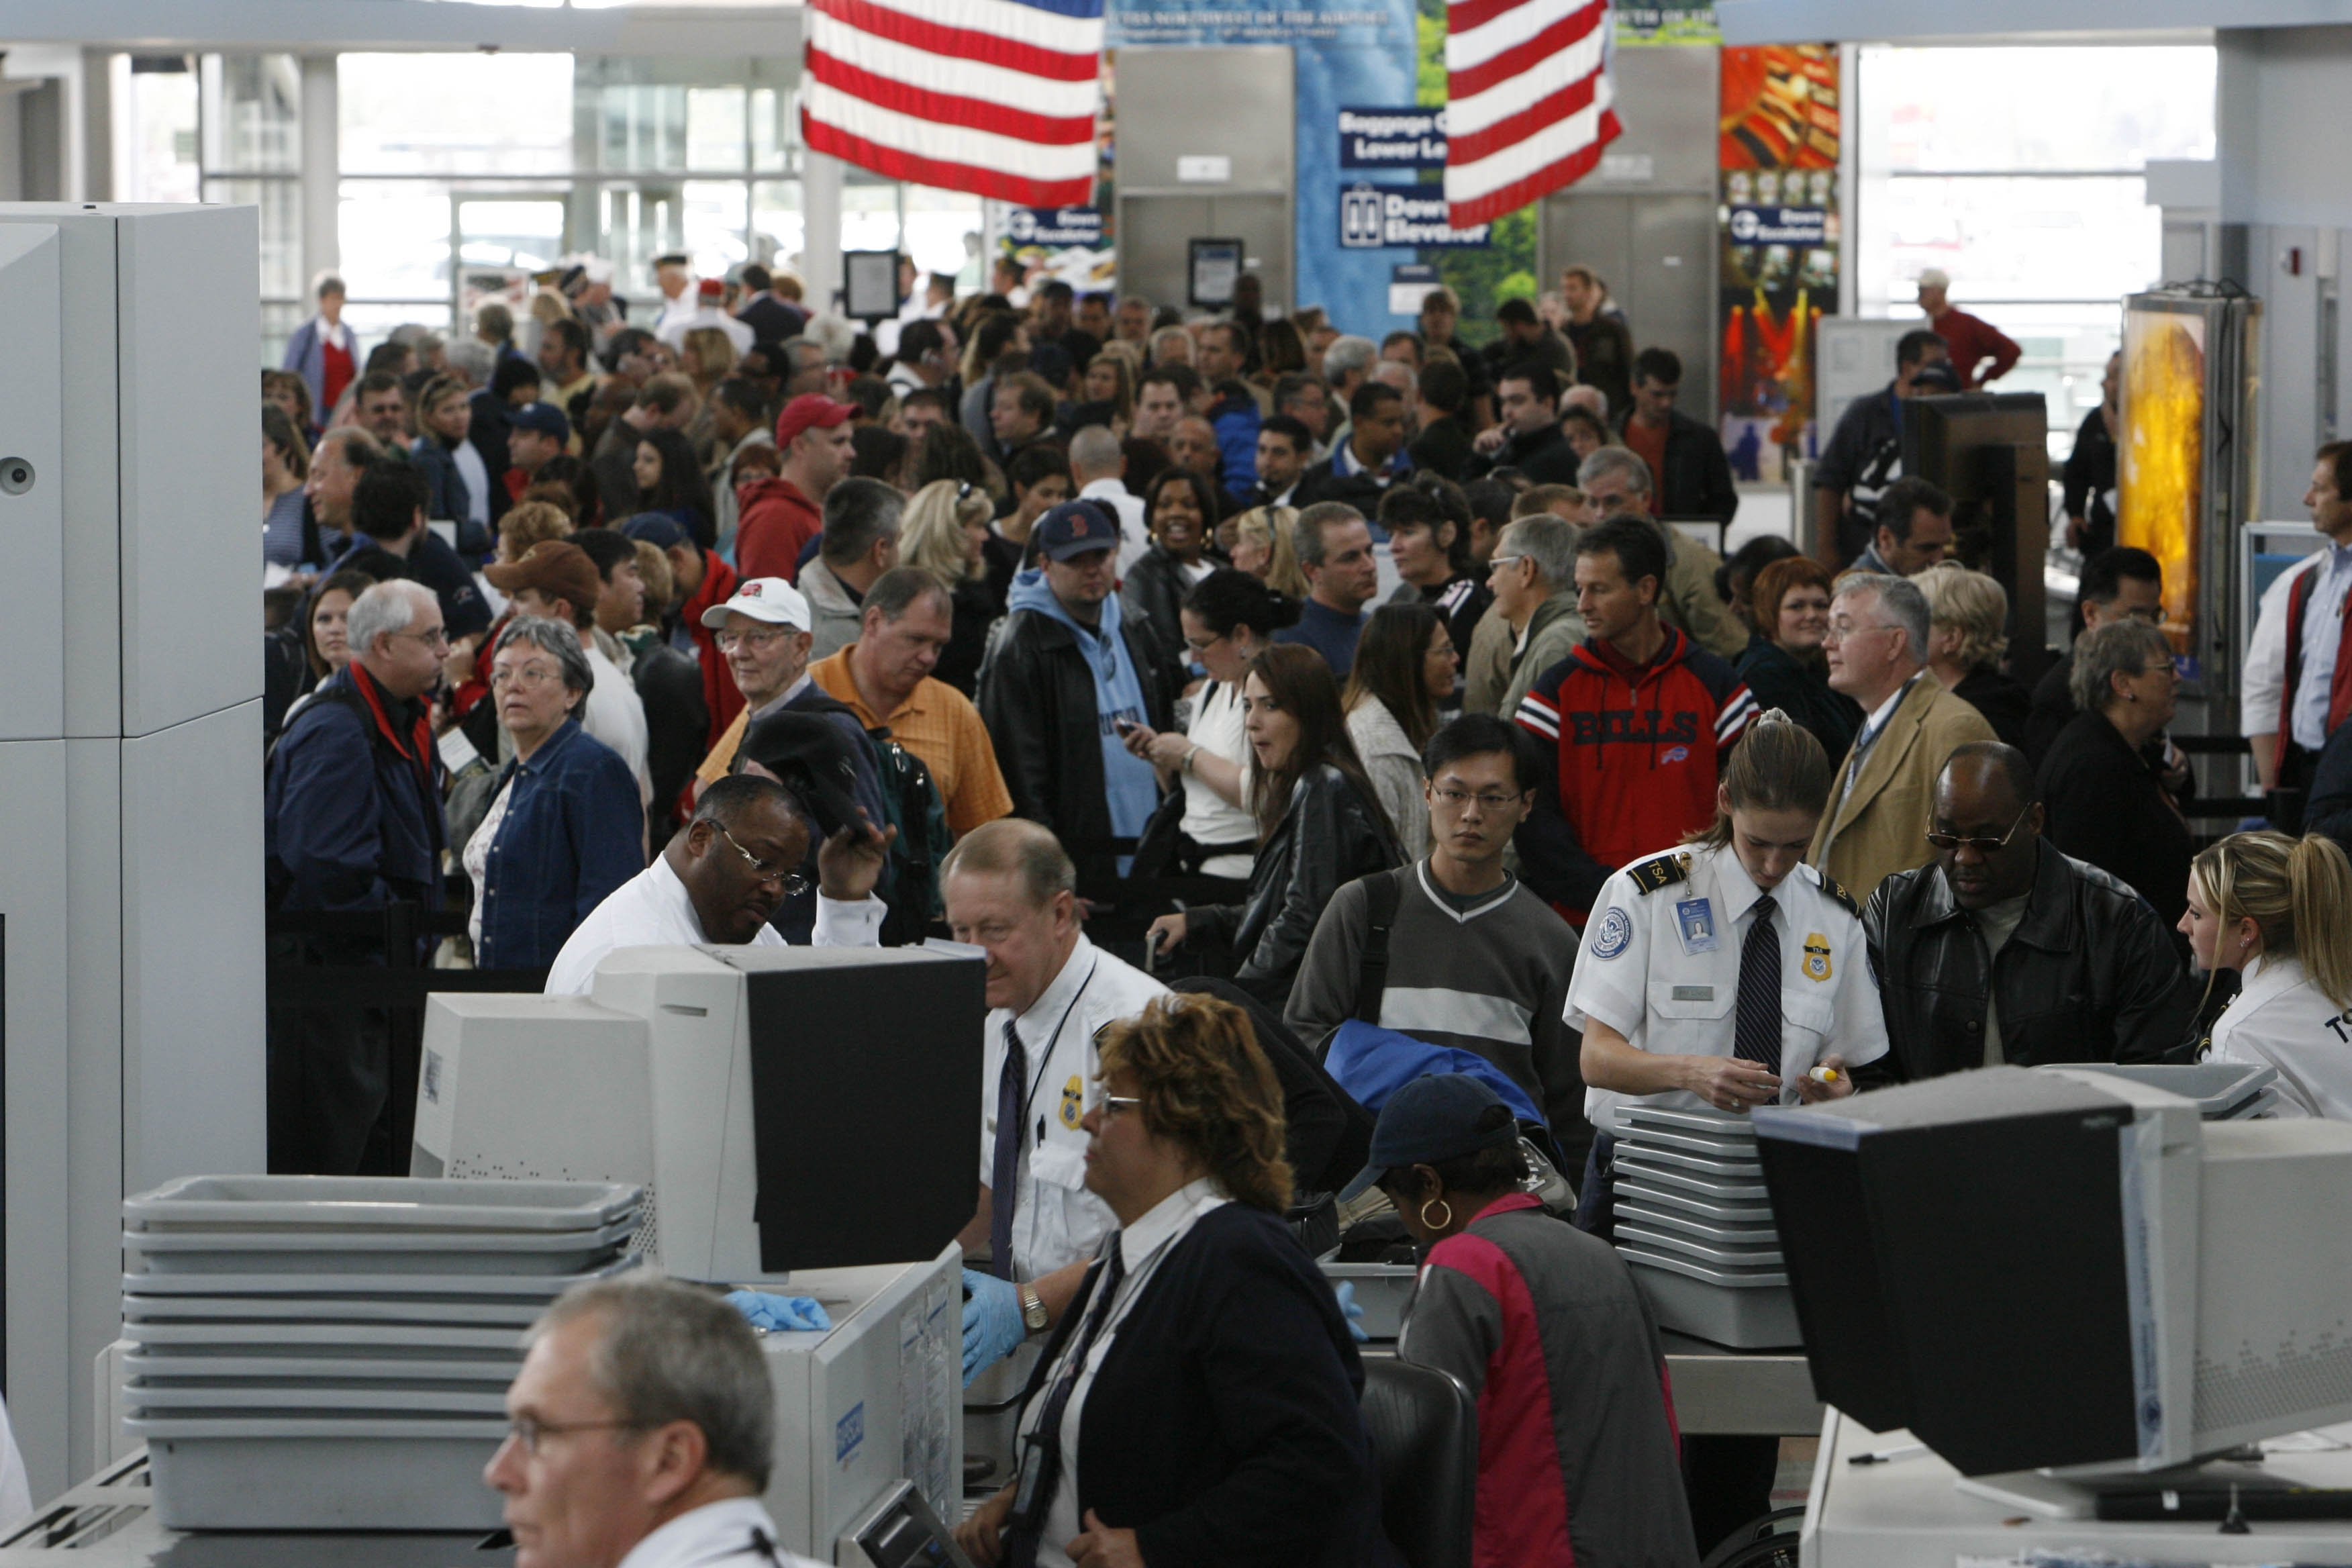 """Looking ahead to summer departures from Buffalo Niagara International Airport, travelers """"can expect to see a checkpoint line that can be up to 20 minutes,"""" a TSA spokeswoman says, but an official sees a """"rough summer"""" due to tight staffing at larger sites."""